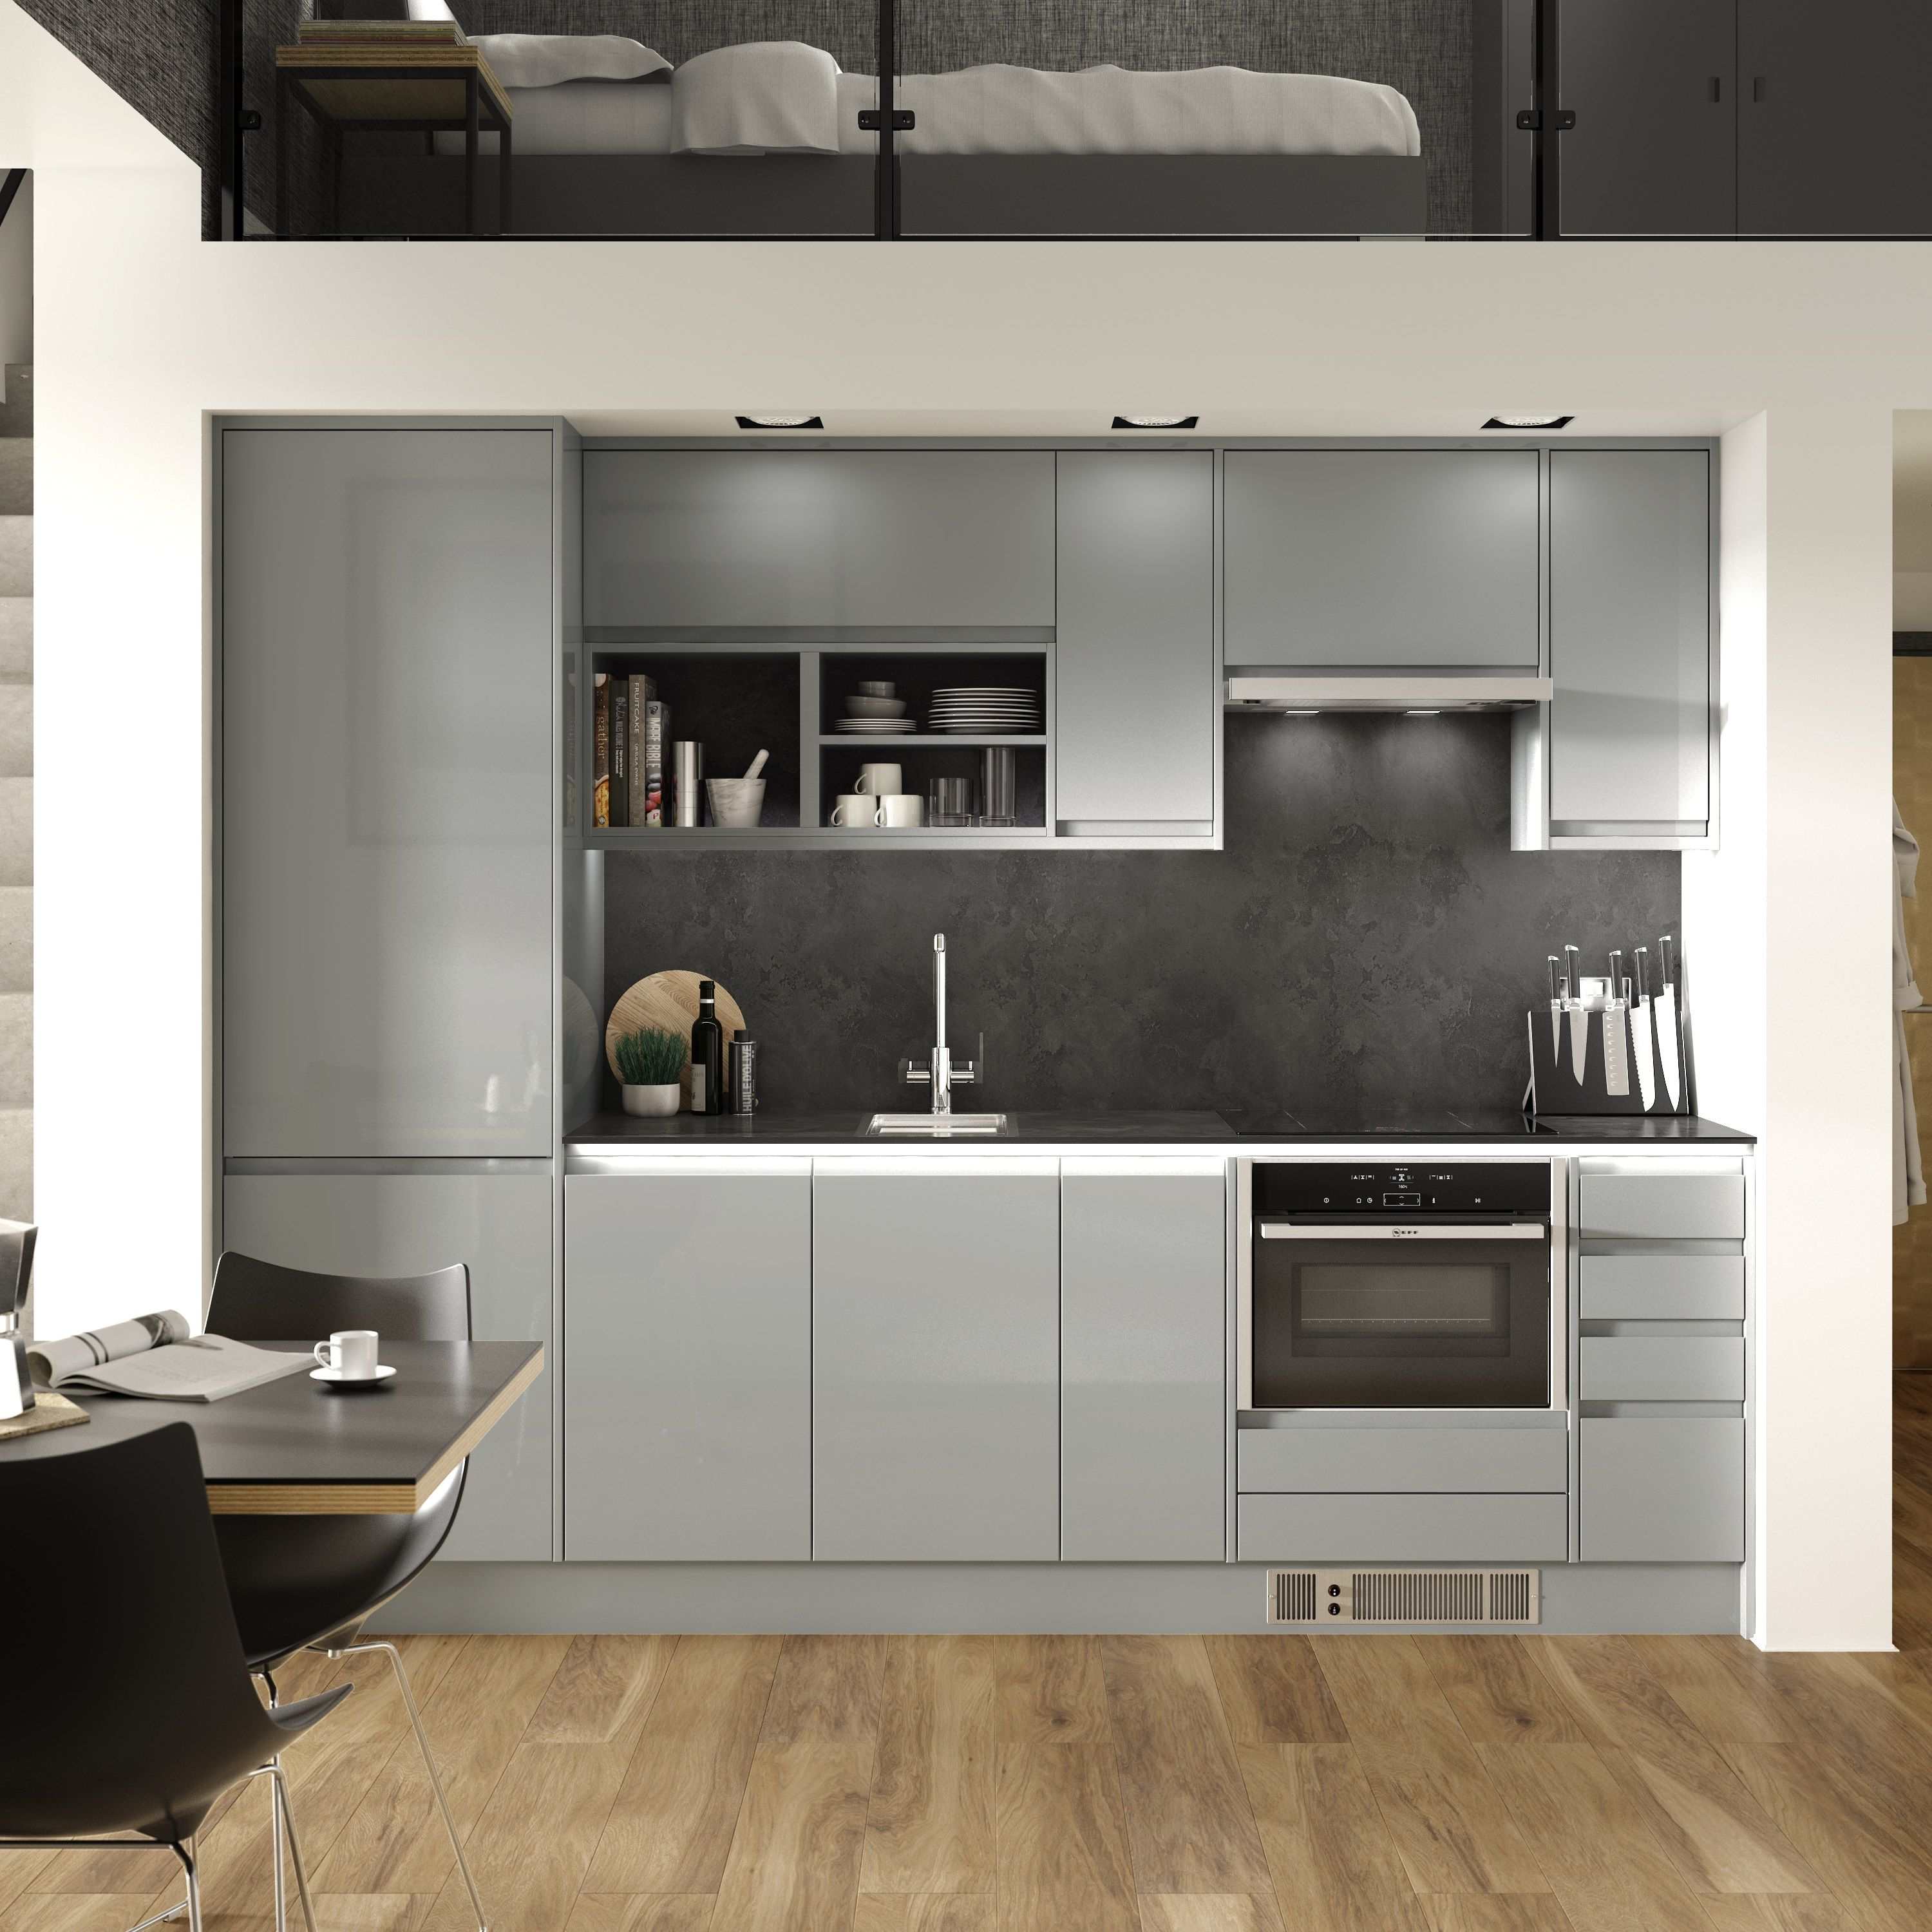 Modern Lifestyles Are Very Demanding On All Of Us Optimising Our Storage Space Has Become An Incr Kitchen Suppliers Kitchen Cabinet Handles Kitchen Handles